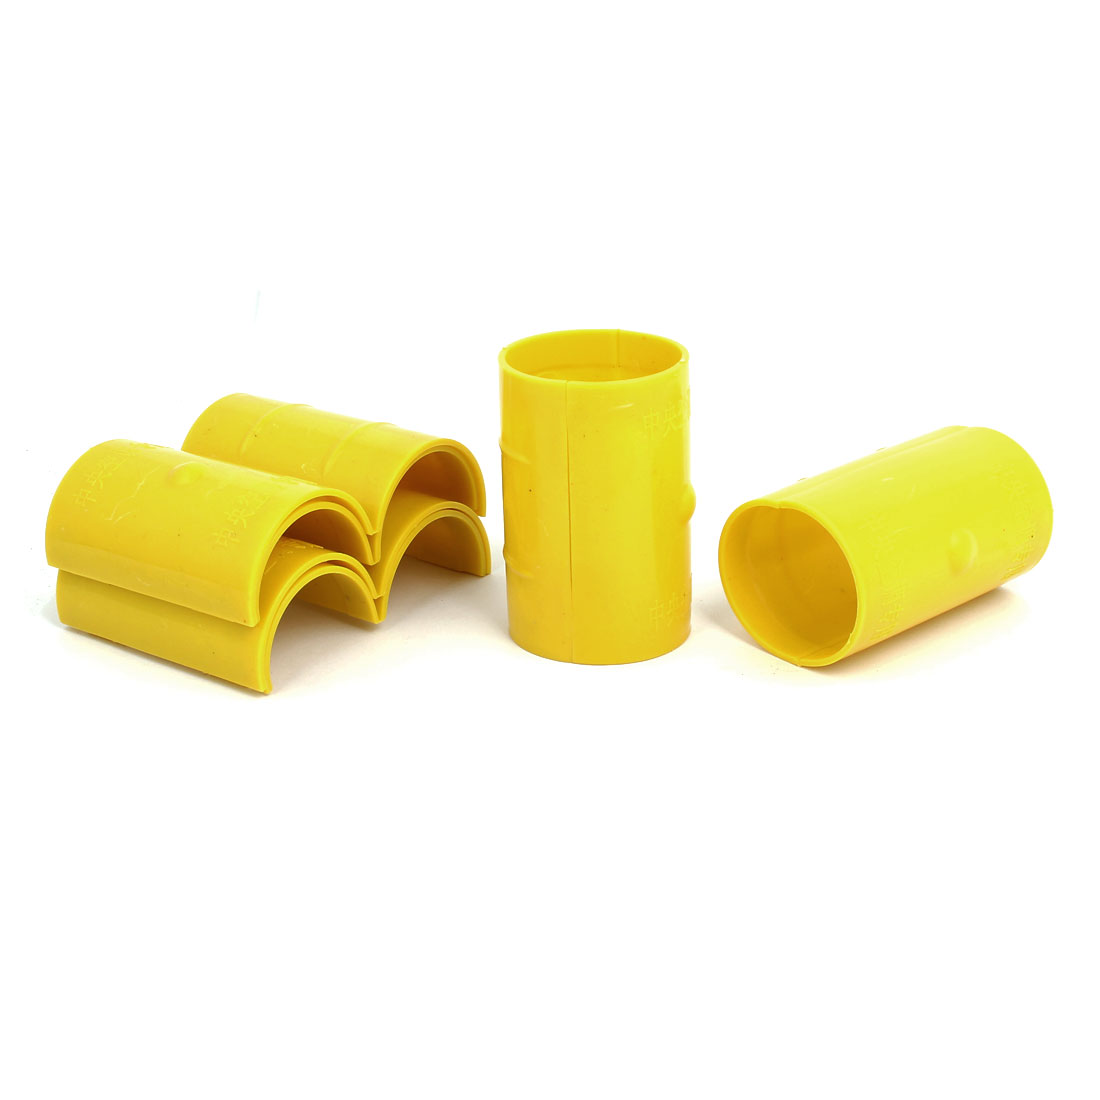 50mm Dia 2mm Thickness Central Air Conditioning Pipe Tube Clamp Yellow 6pcs